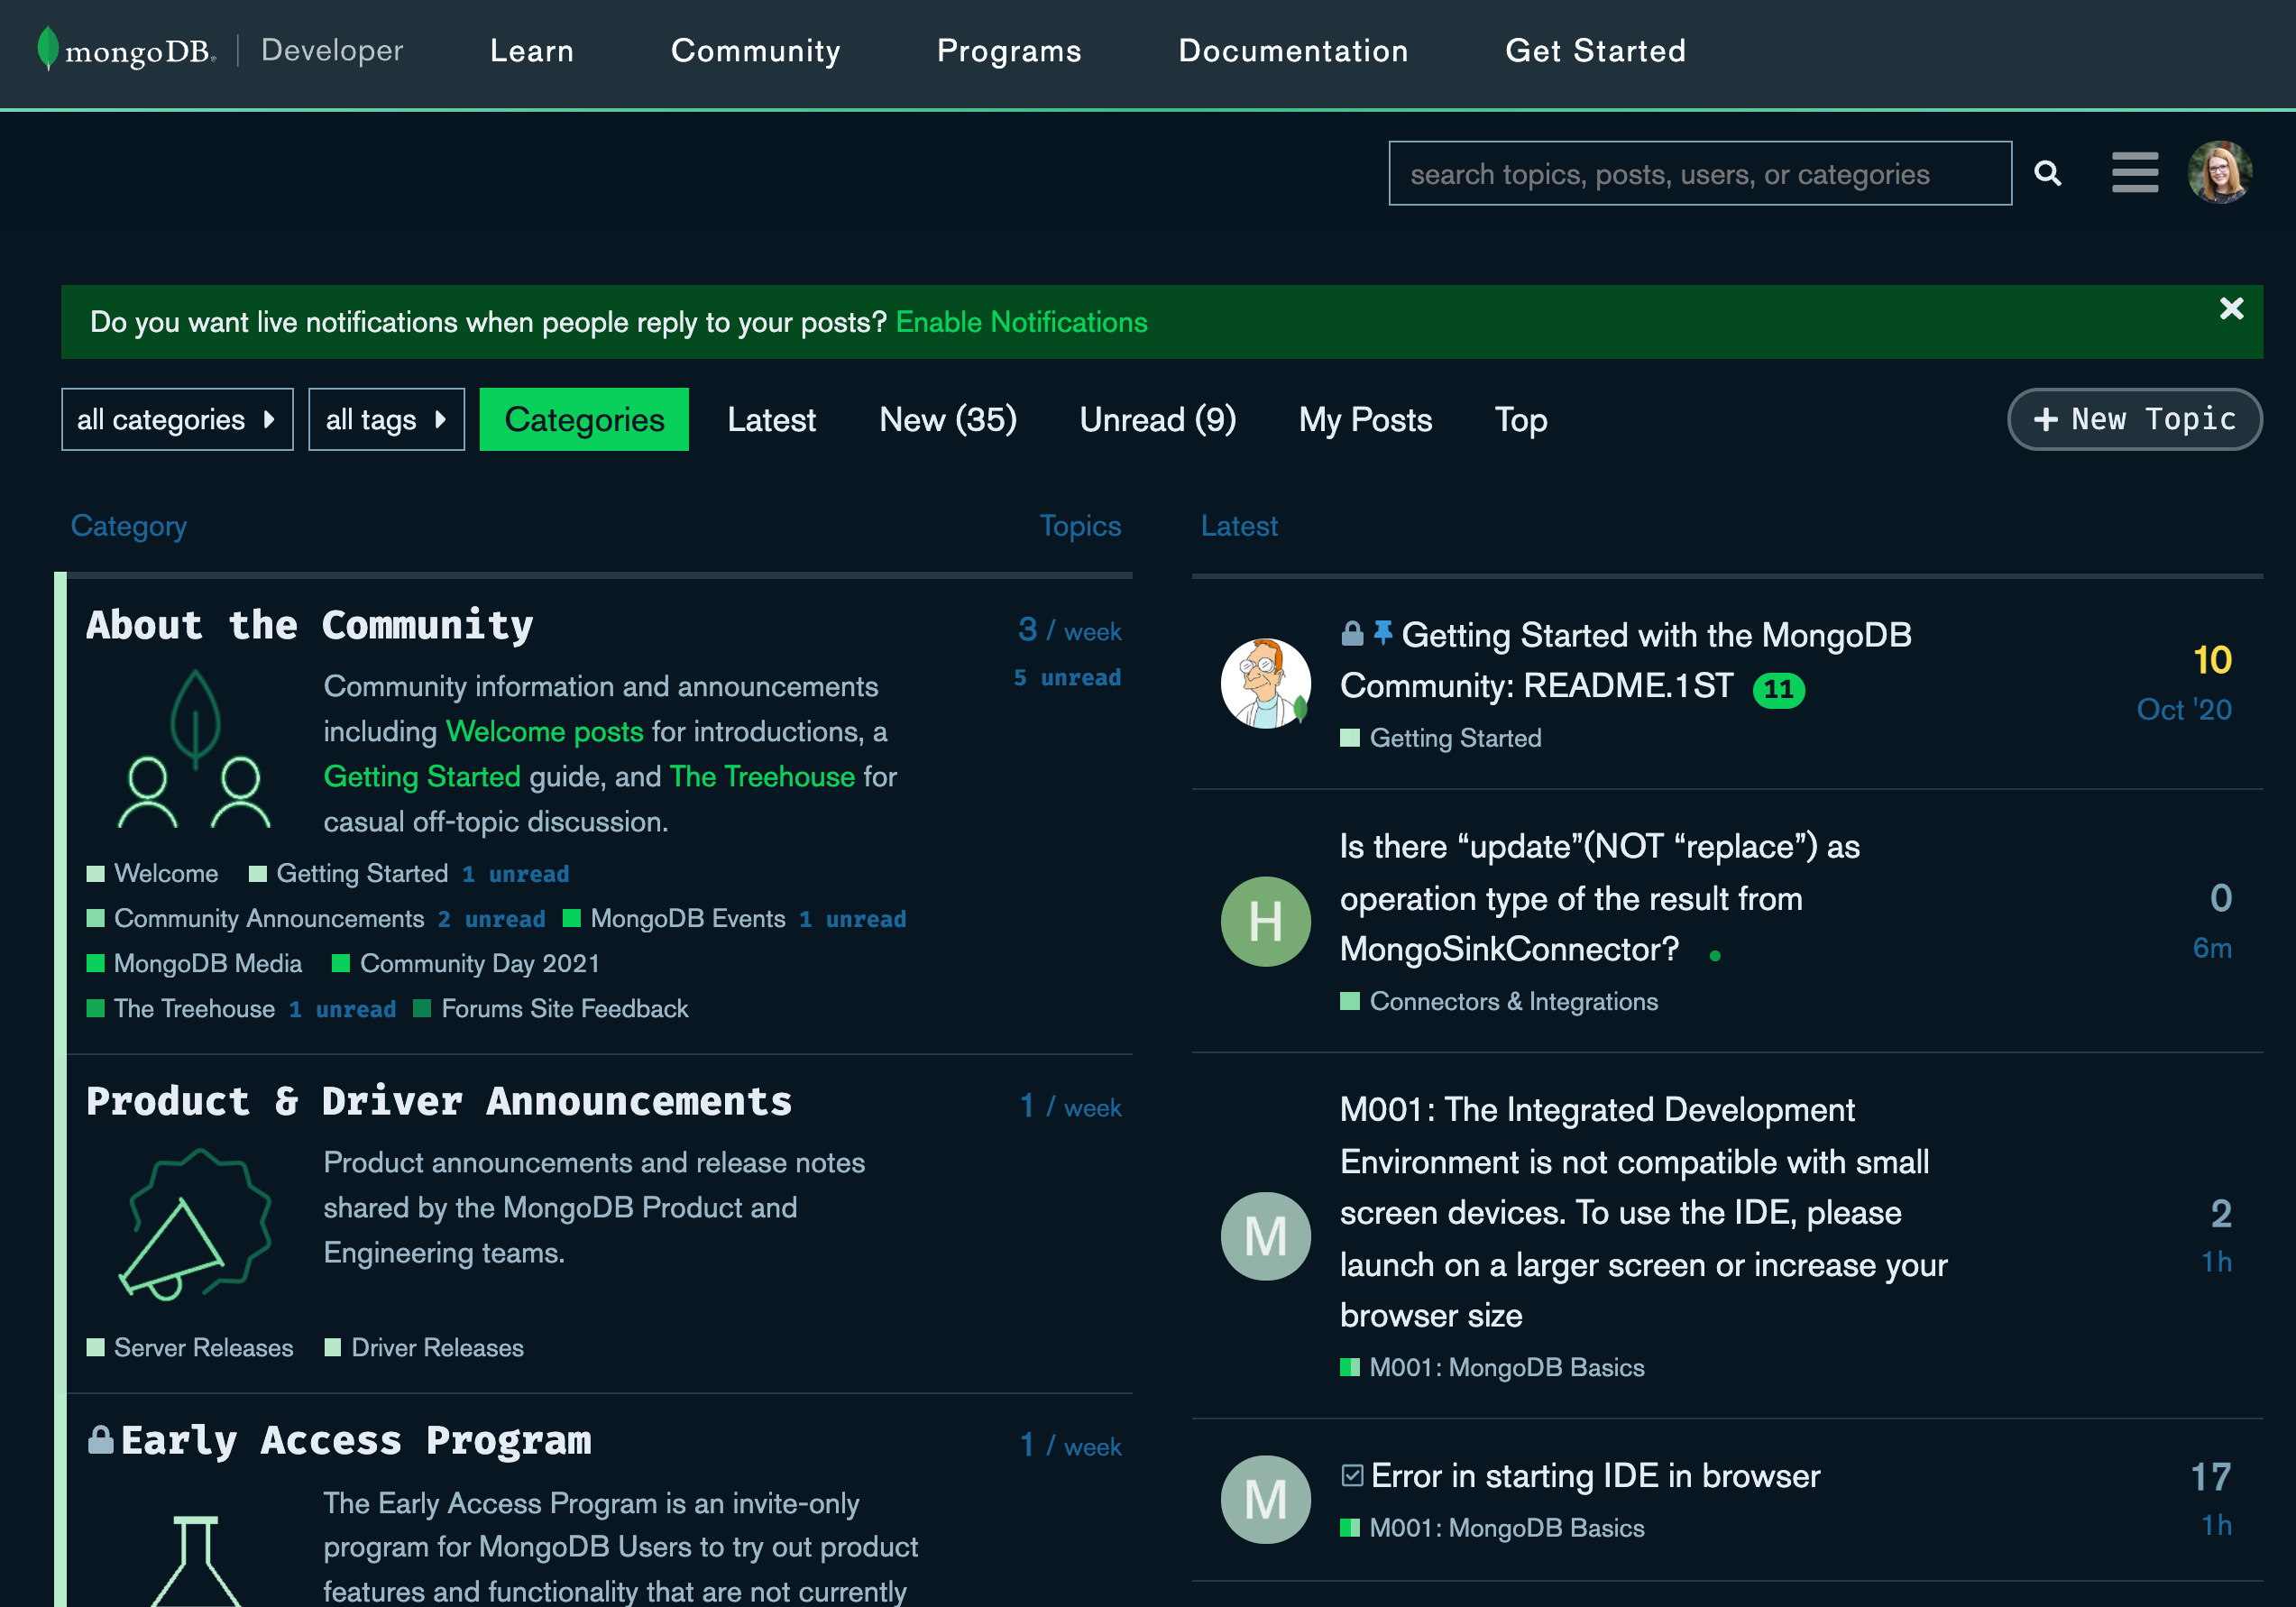 Screenshot of the front page of the MongoDB Community